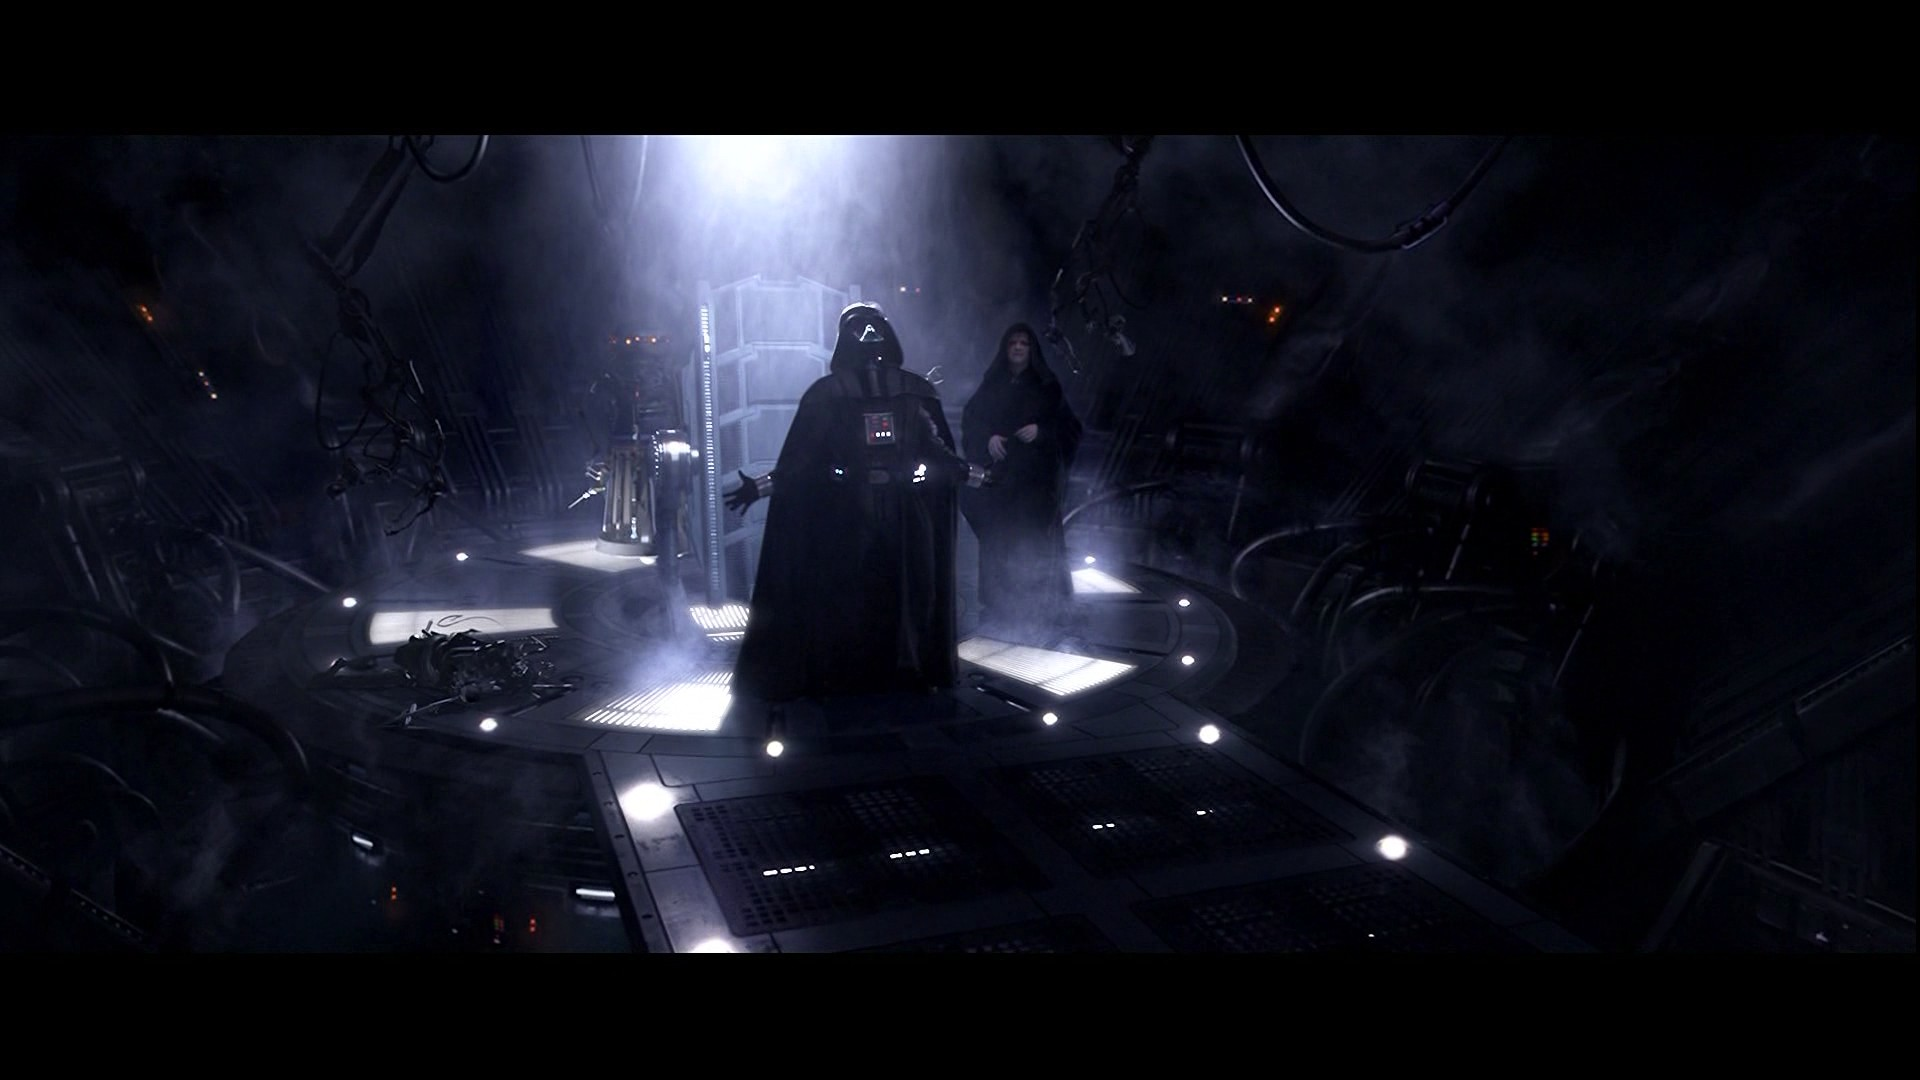 Star Wars Wallpaper 1920x1080 Star Wars Darth Vader Screenshots 1920x1080